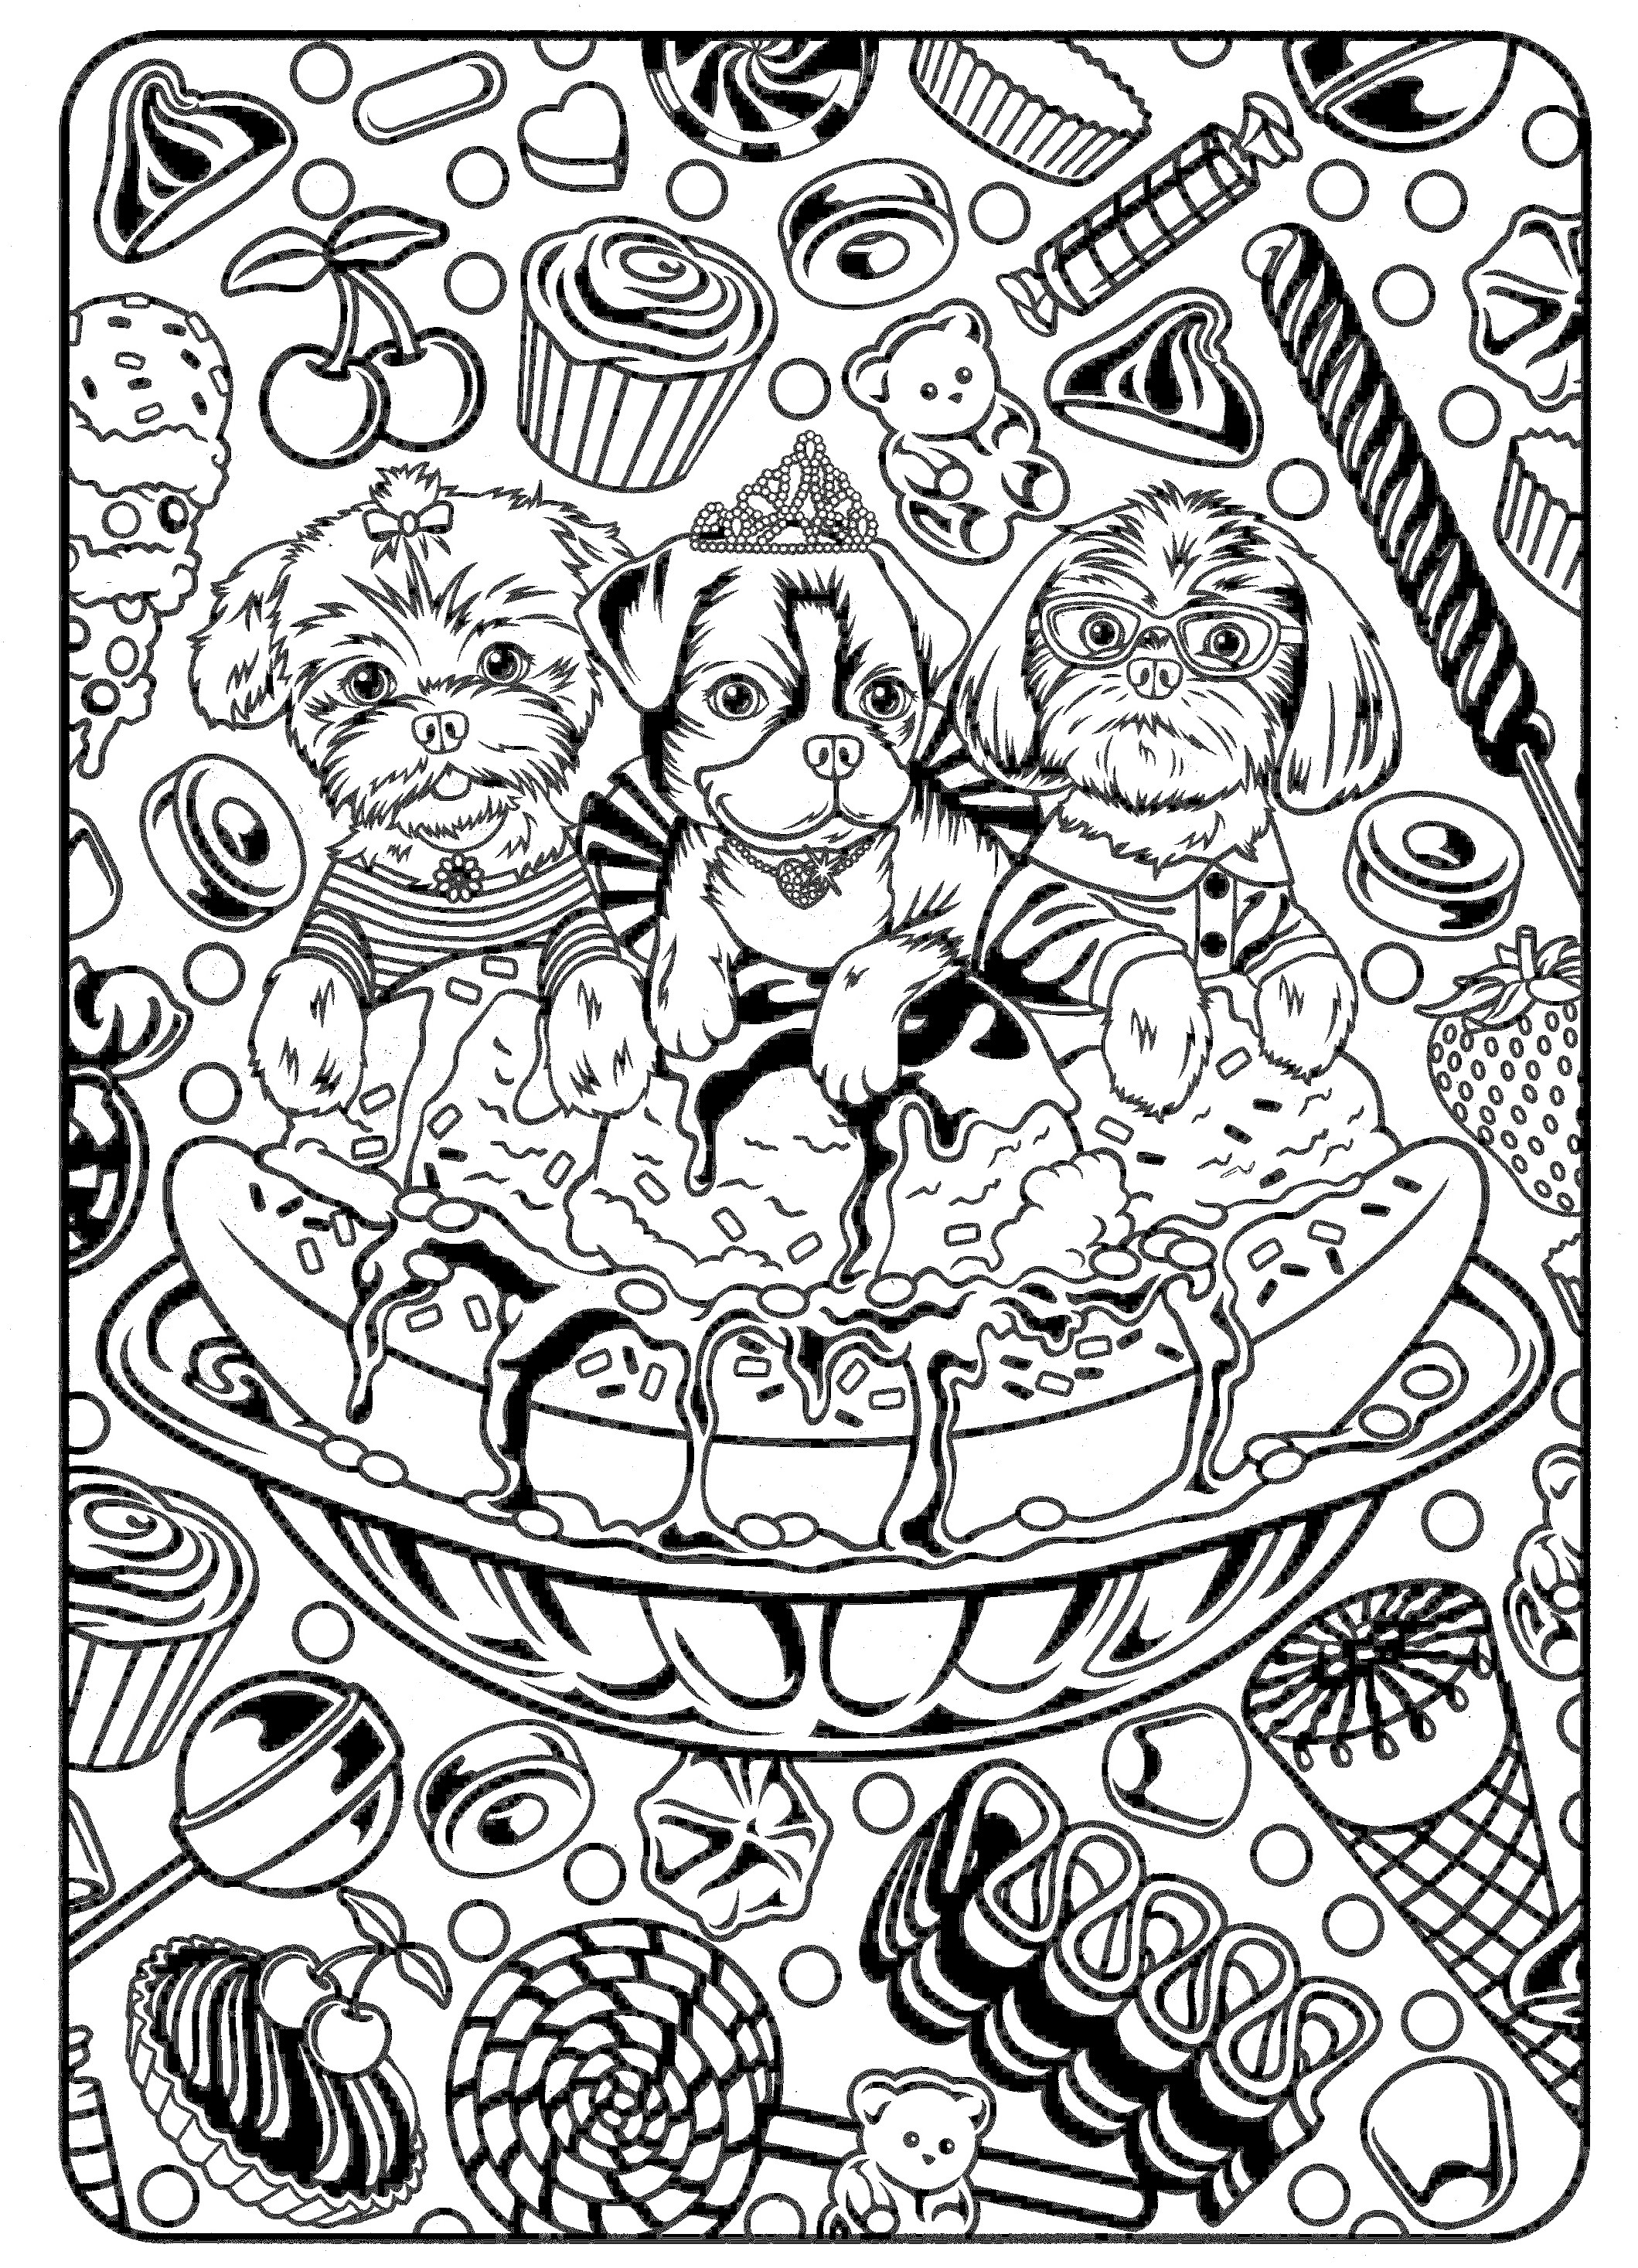 printable detailed coloring pages detailed coloring pages for adults free printable pages detailed printable coloring